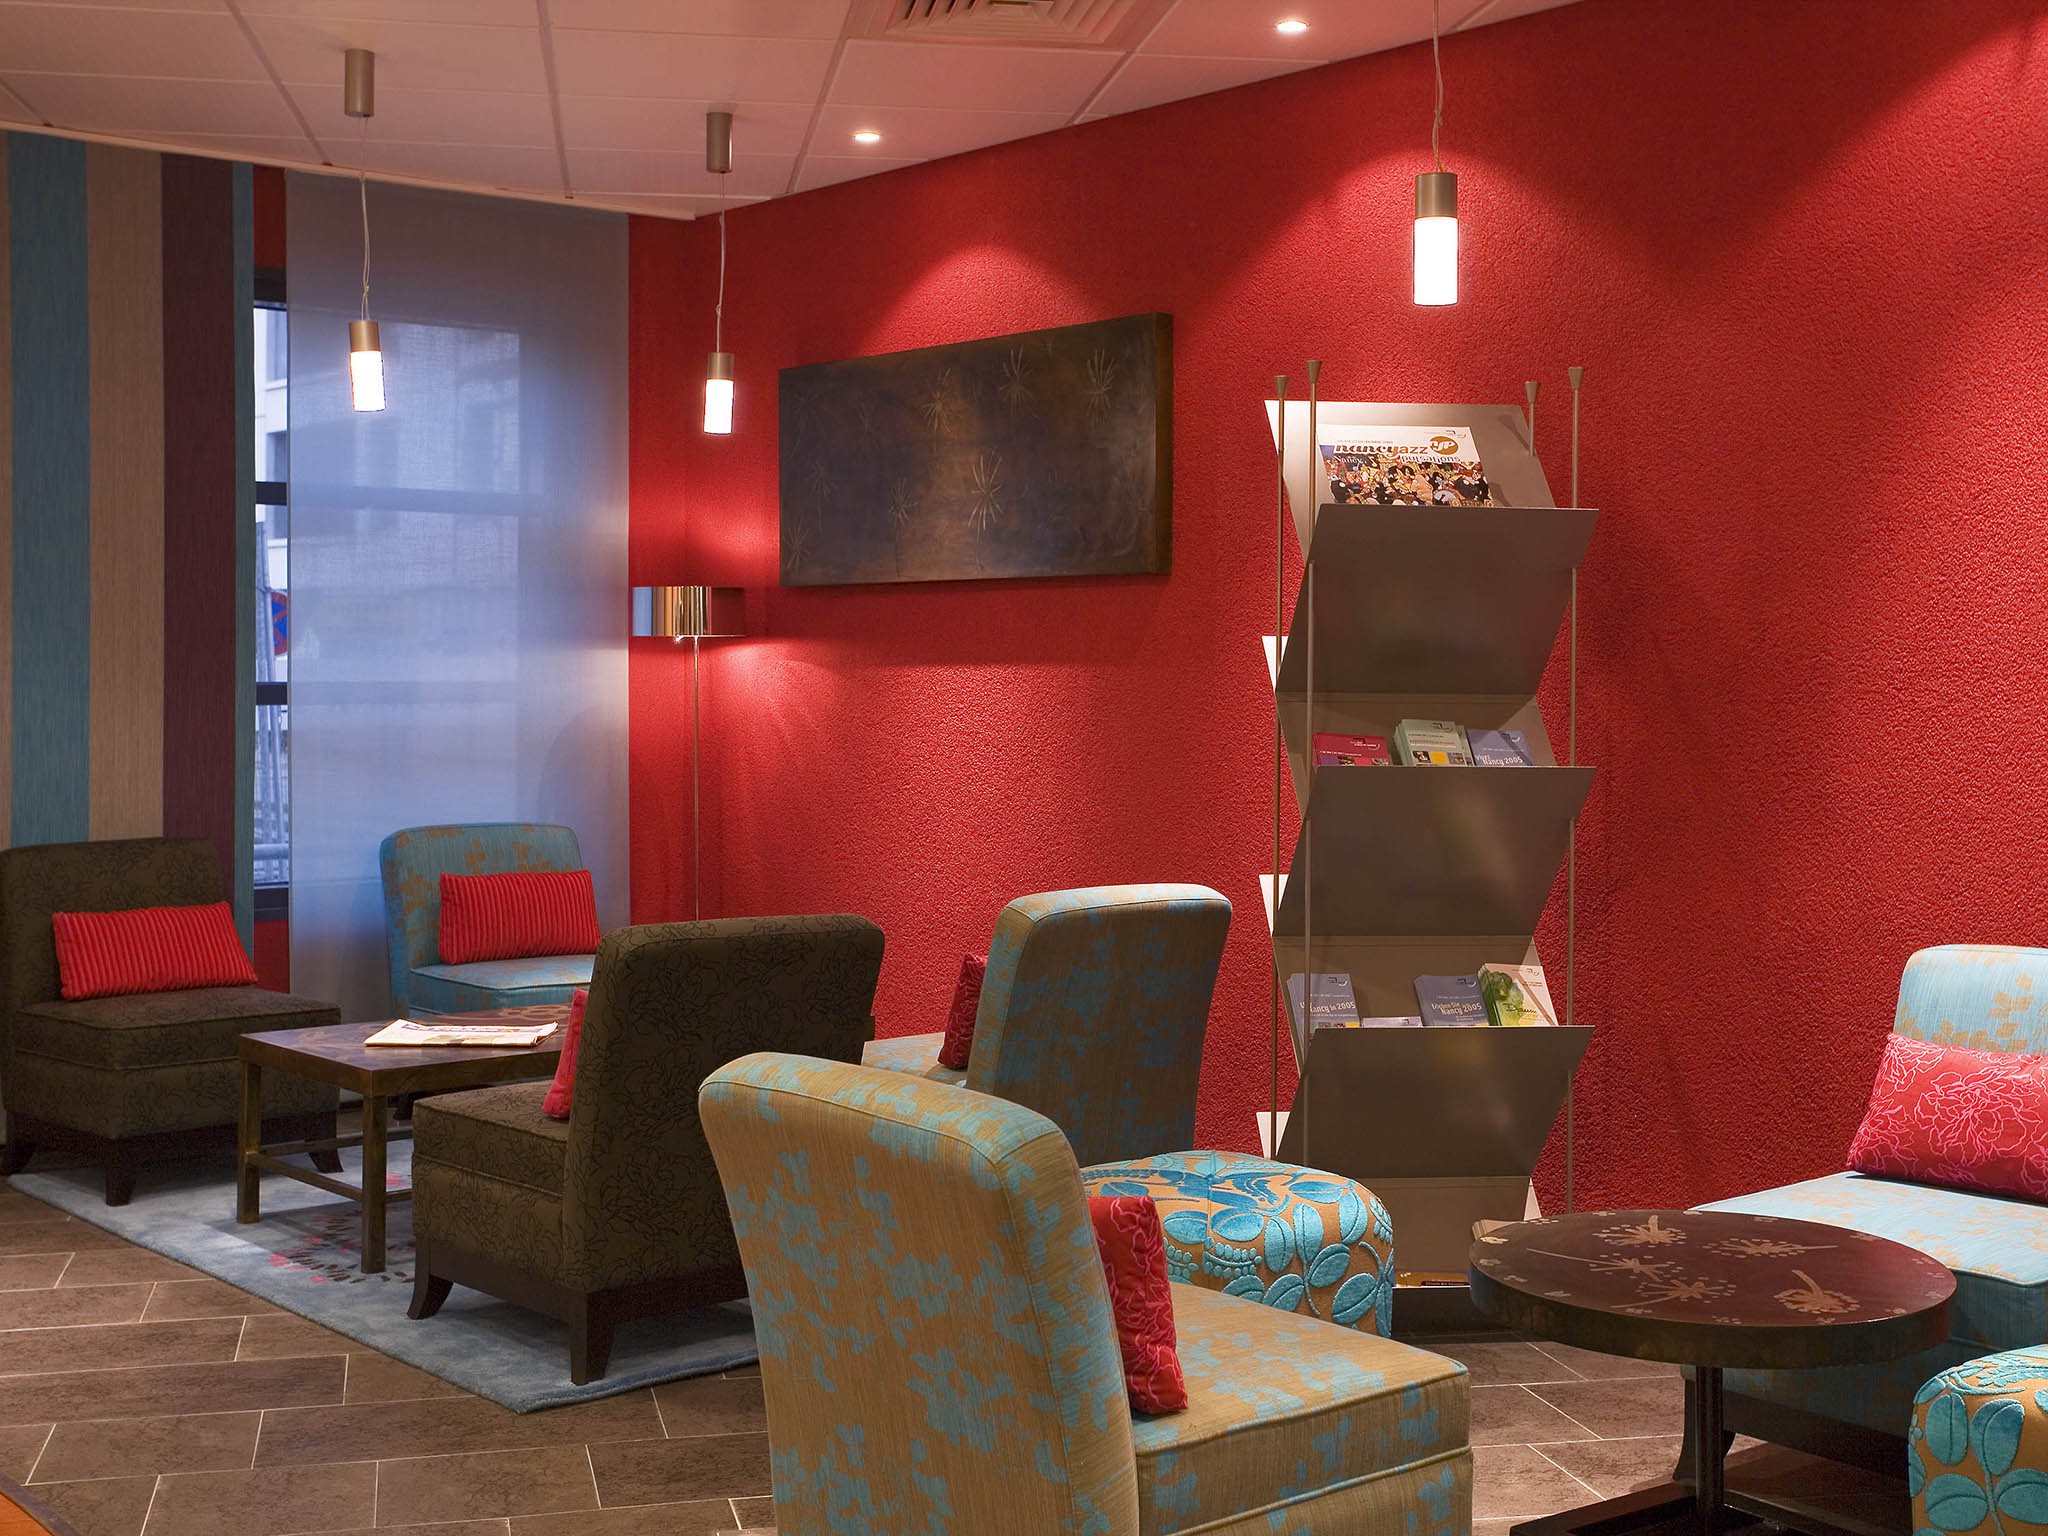 Hotel – Novotel Suites Nancy Centre